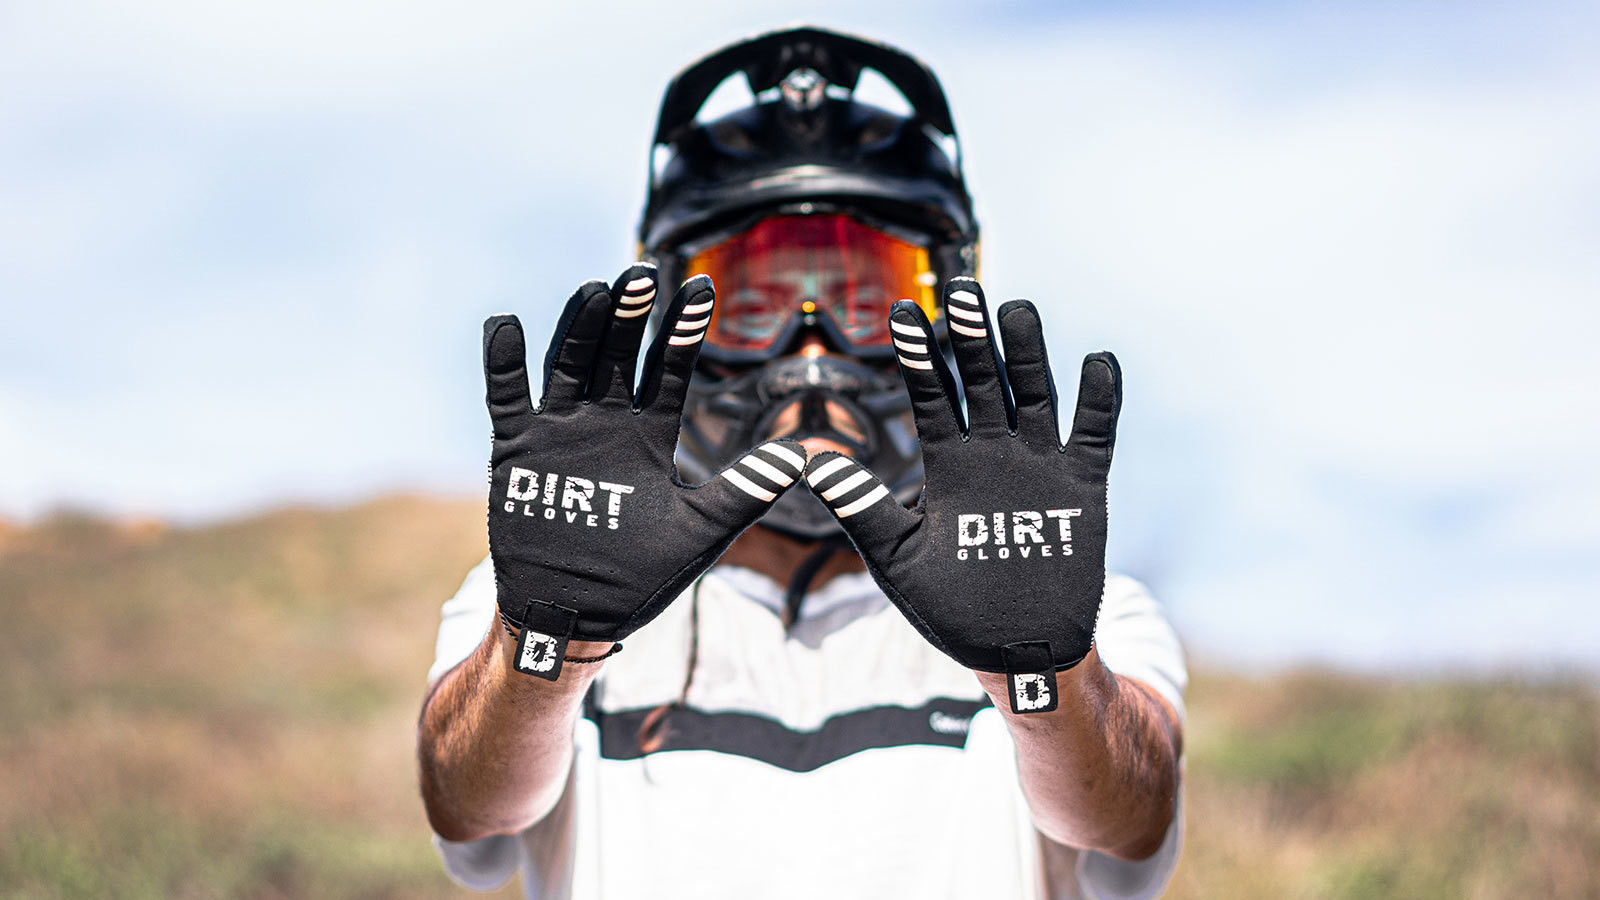 Proudly Announcing the launch of Dirt Gloves